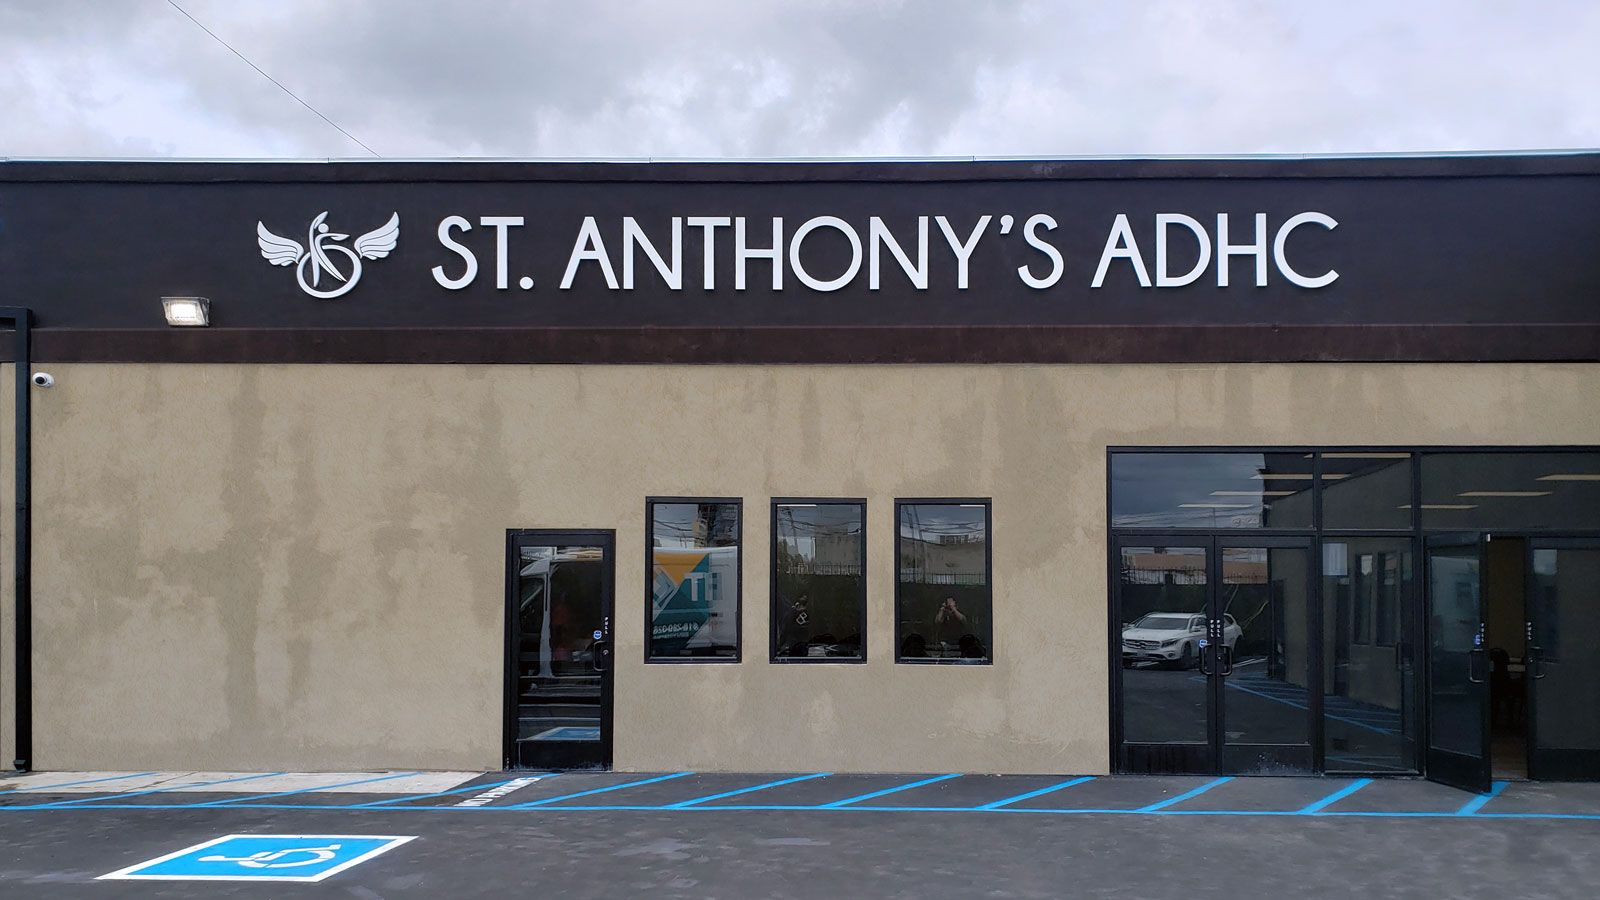 St. Anthony's ADHC custom 3d sign displaying the company name and logo made of aluminum and acrylic for storefront branding